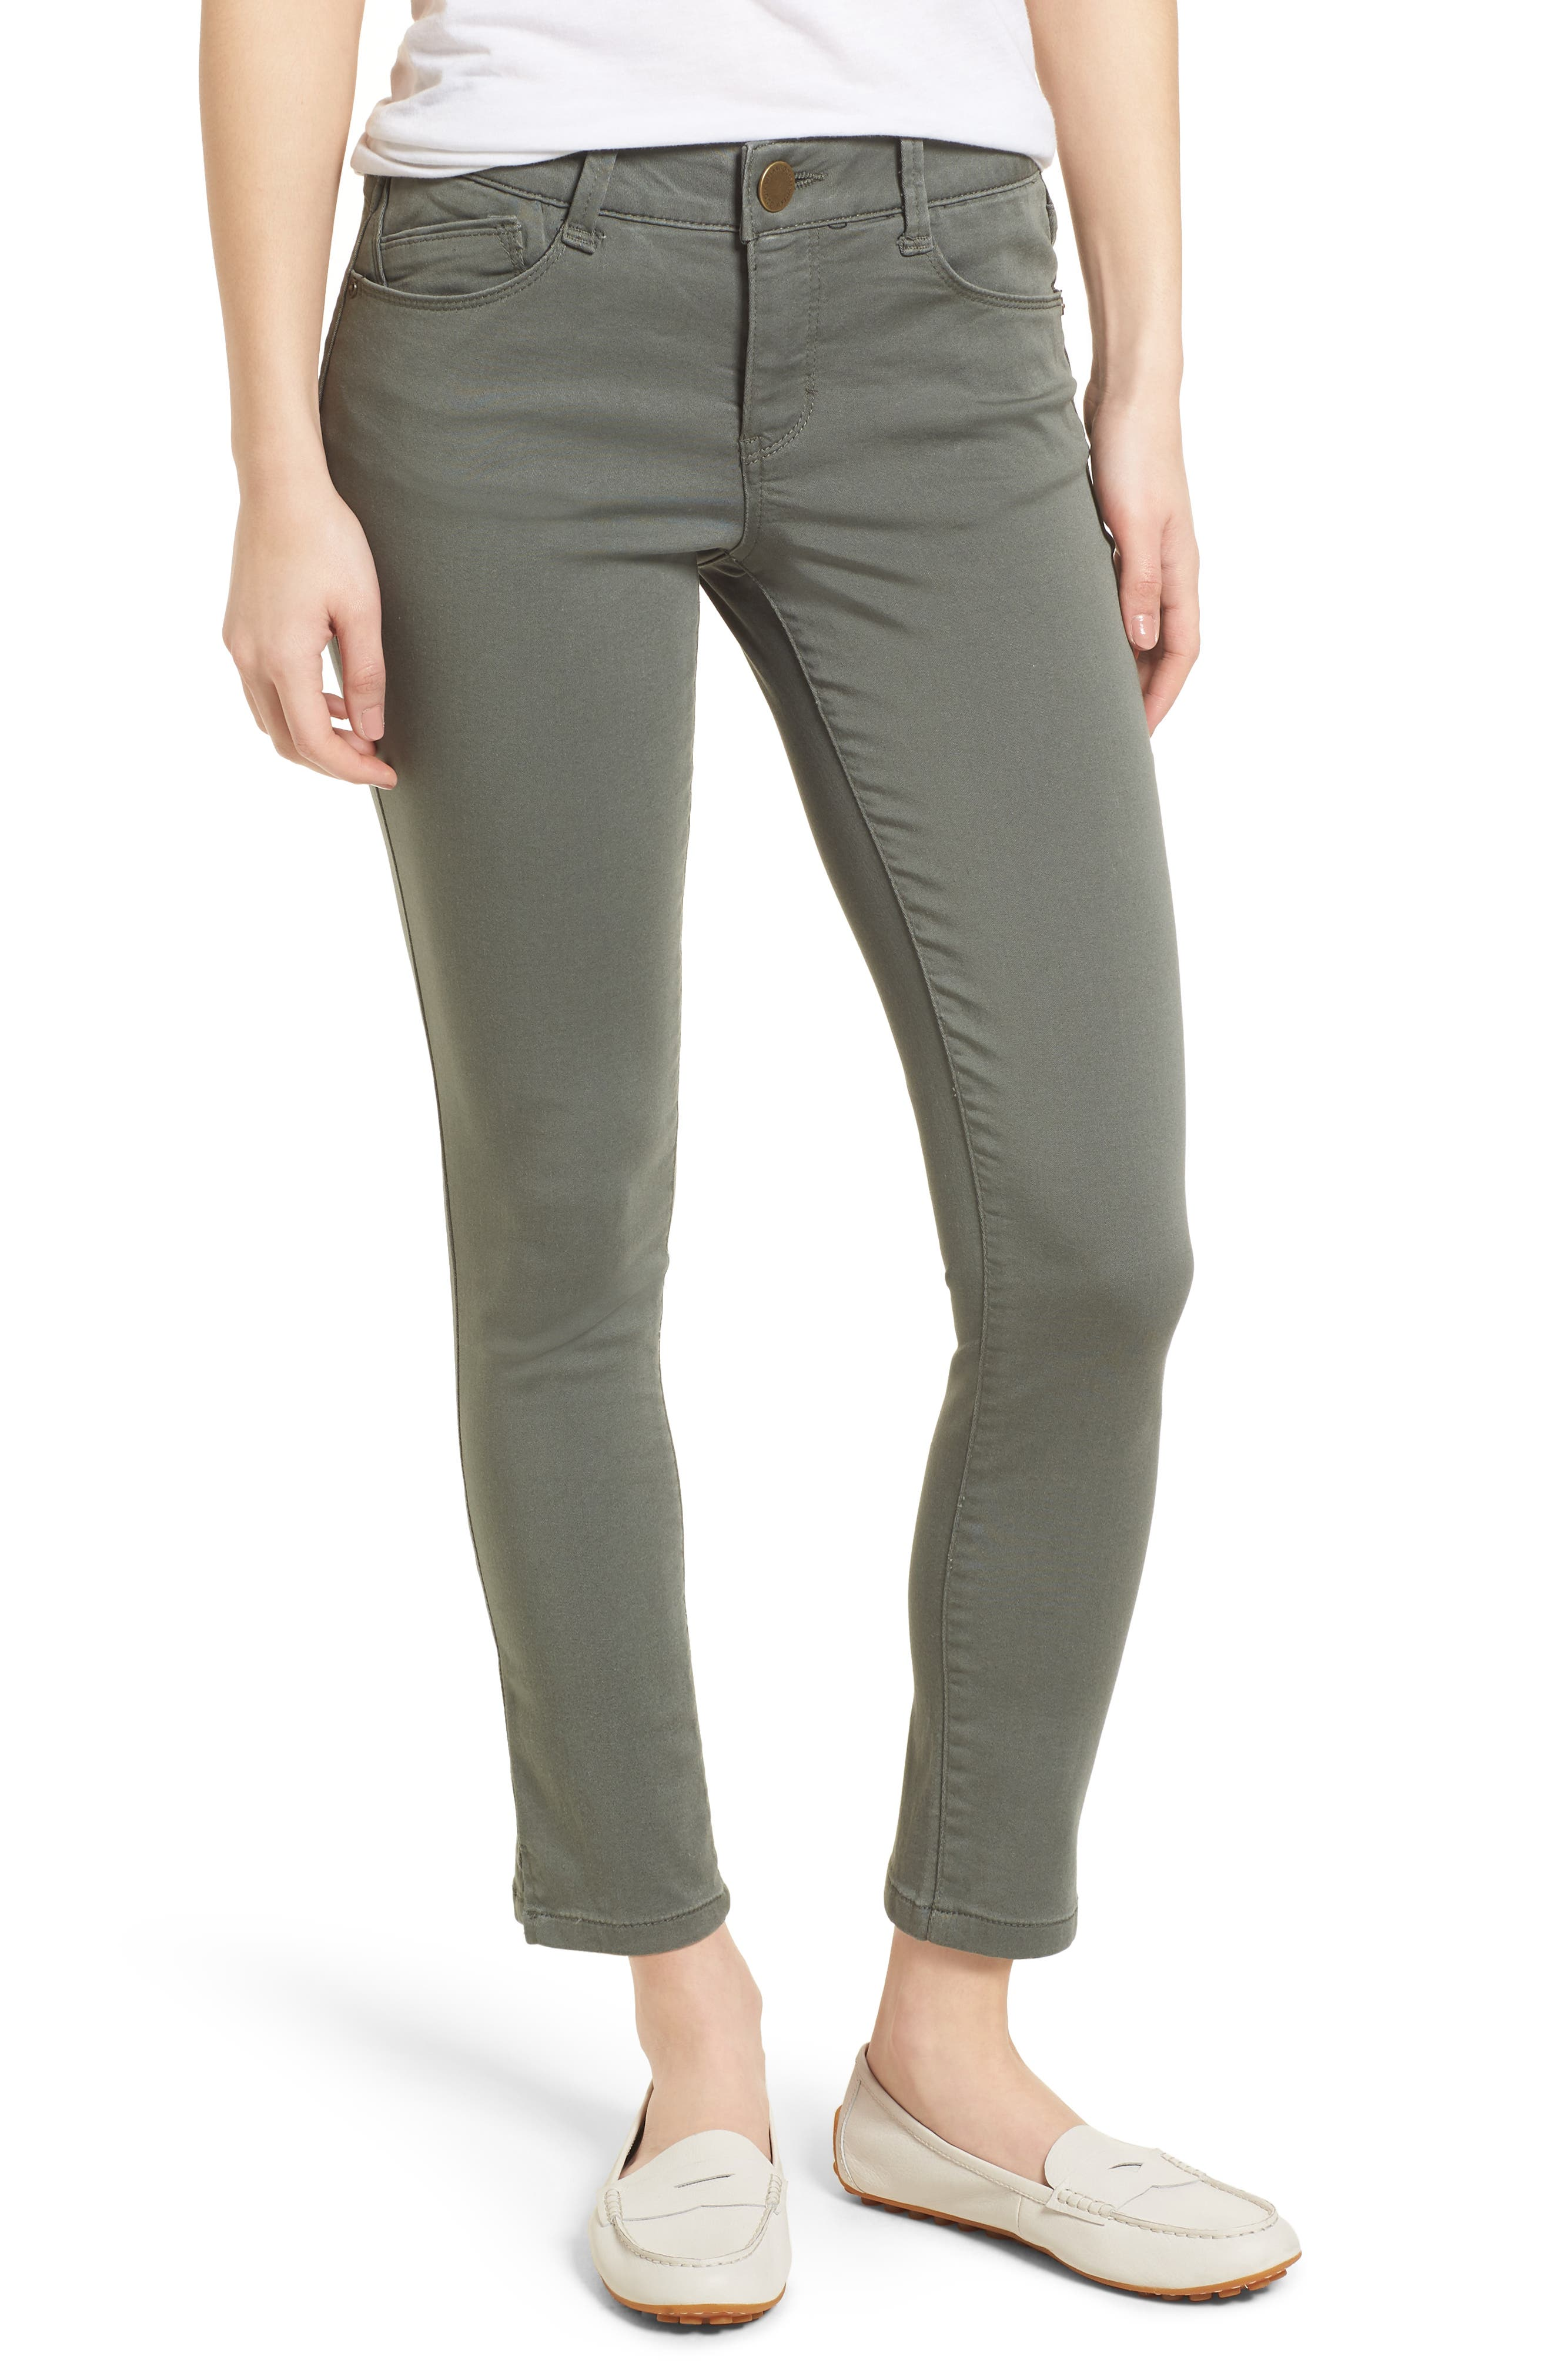 Ab-solution Ankle Skimmer Jeans,                             Main thumbnail 1, color,                             Thyme